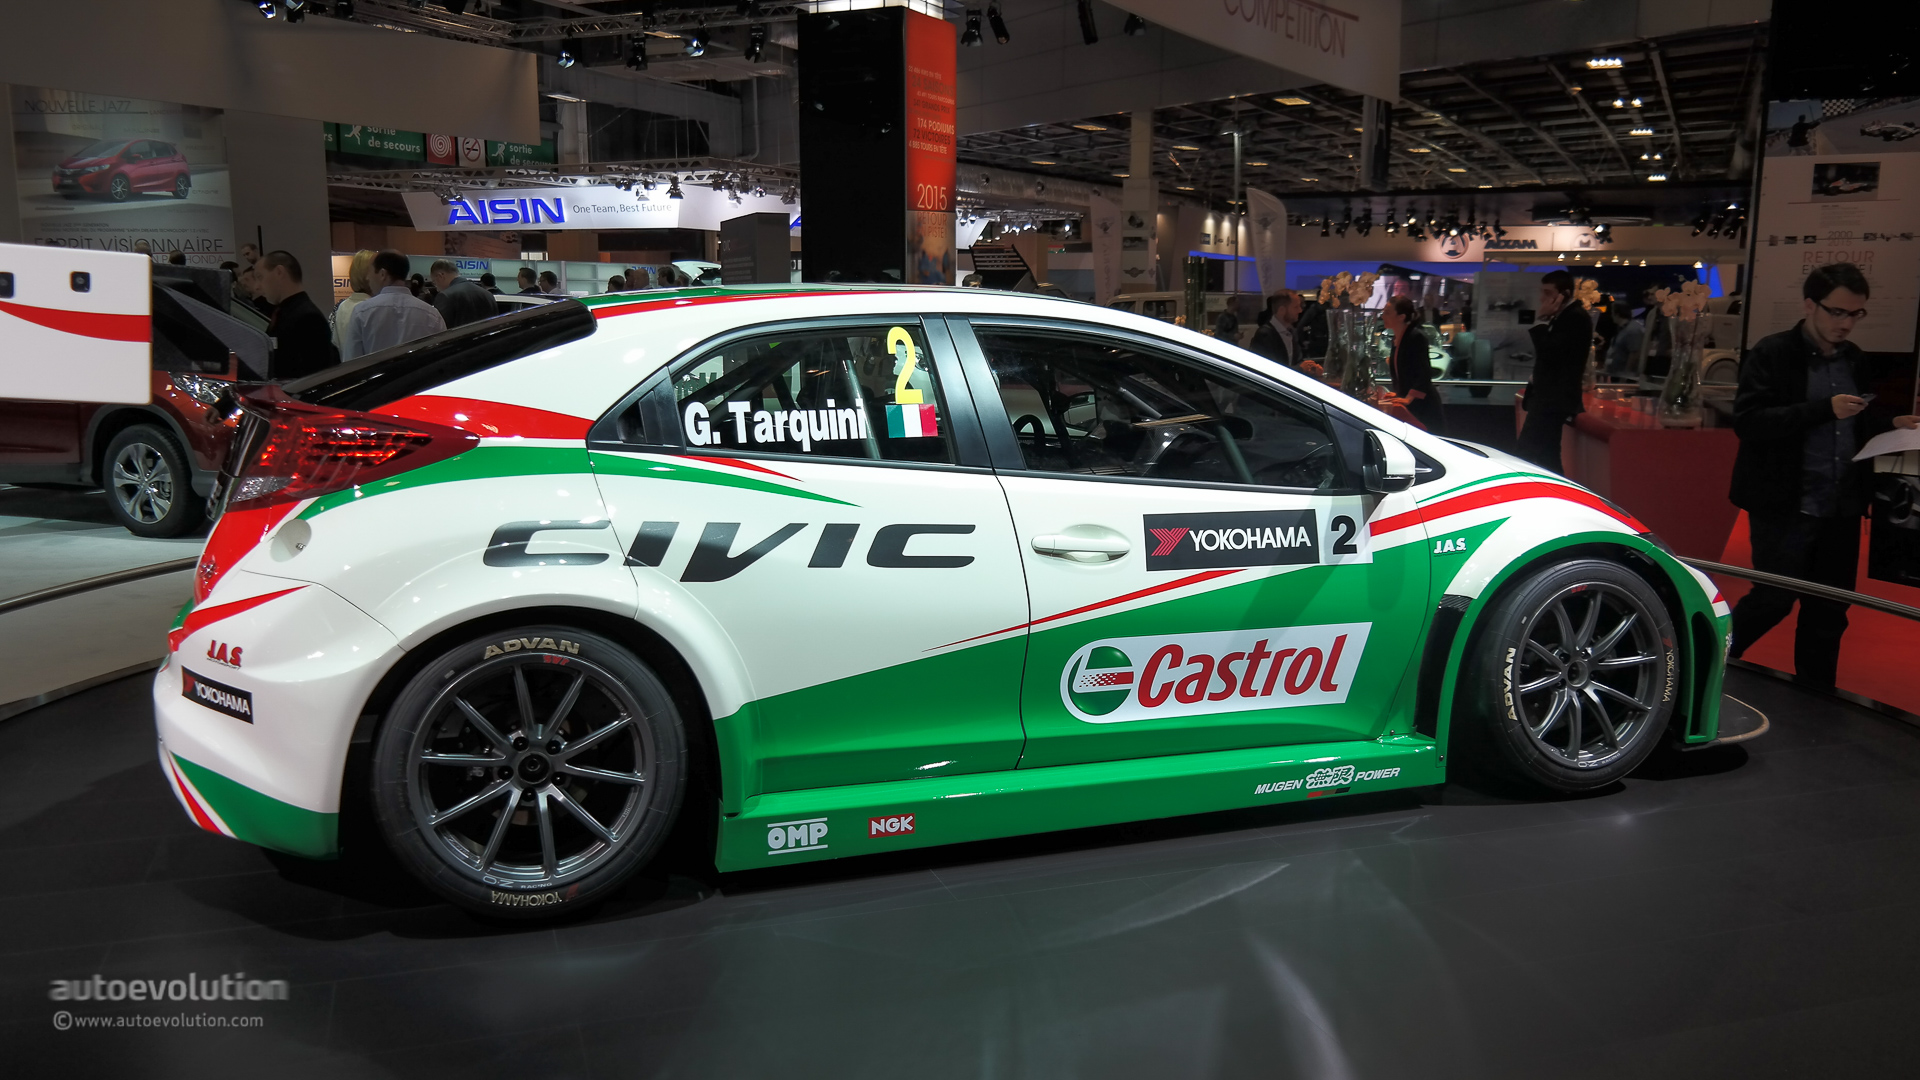 Fastest Car In The World Wallpaper Next Honda Civic Type R Coming To The Us In 2016